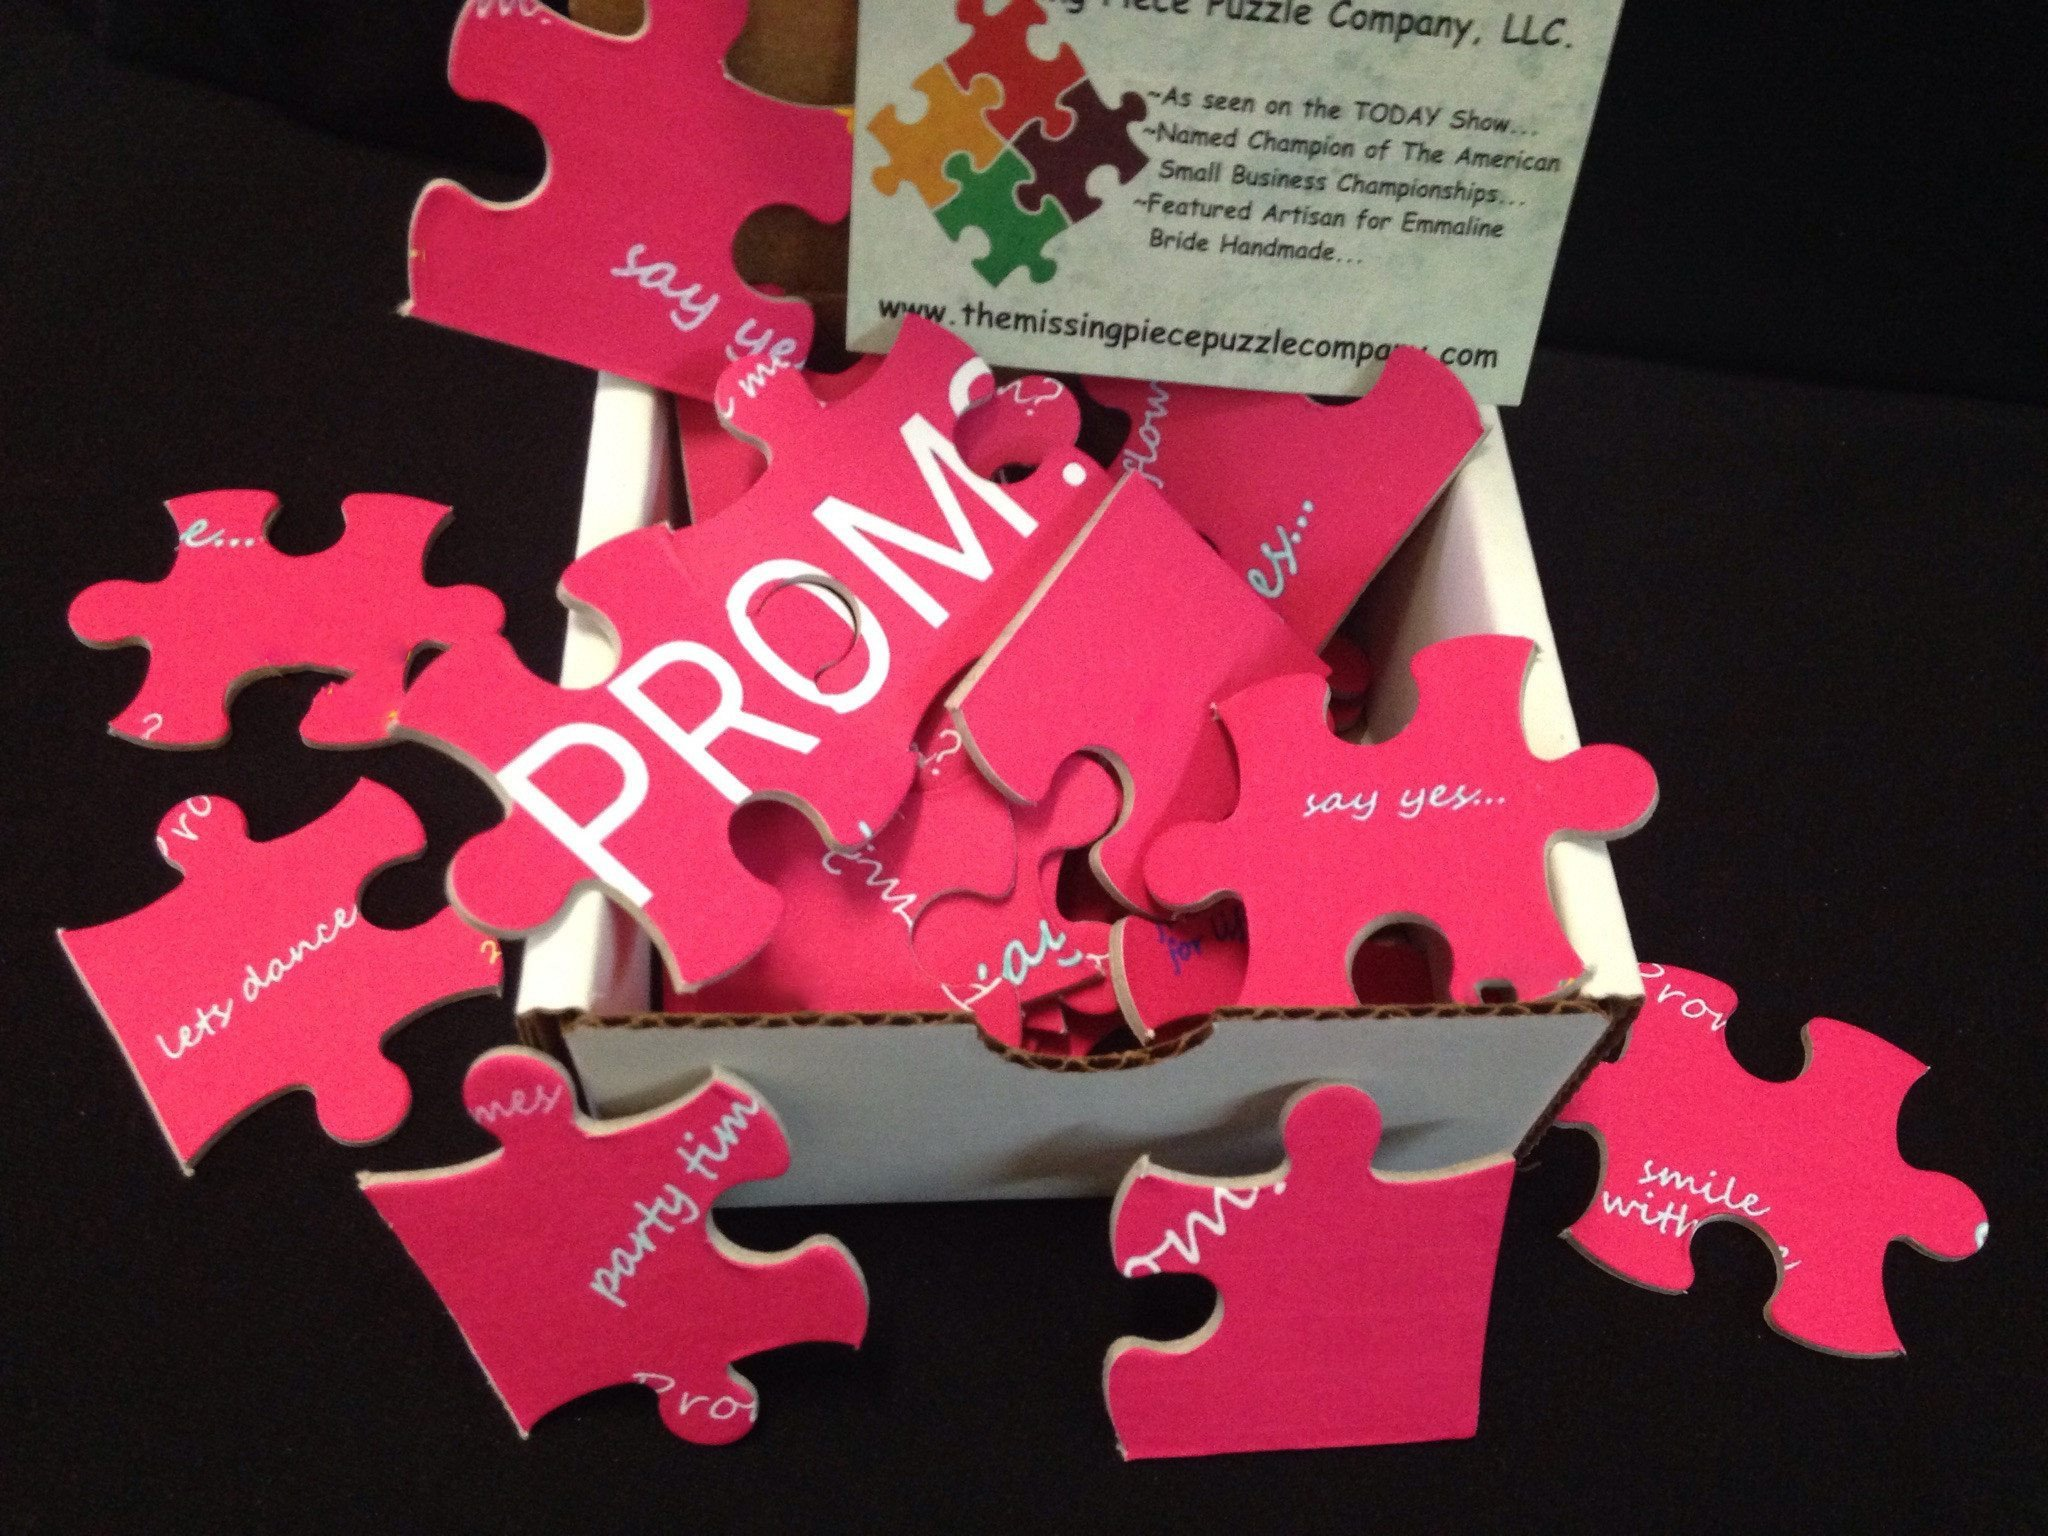 Unique PROMPOSAL. Prom Proposal Puzzle. Ask Her or Him to the Prom ...